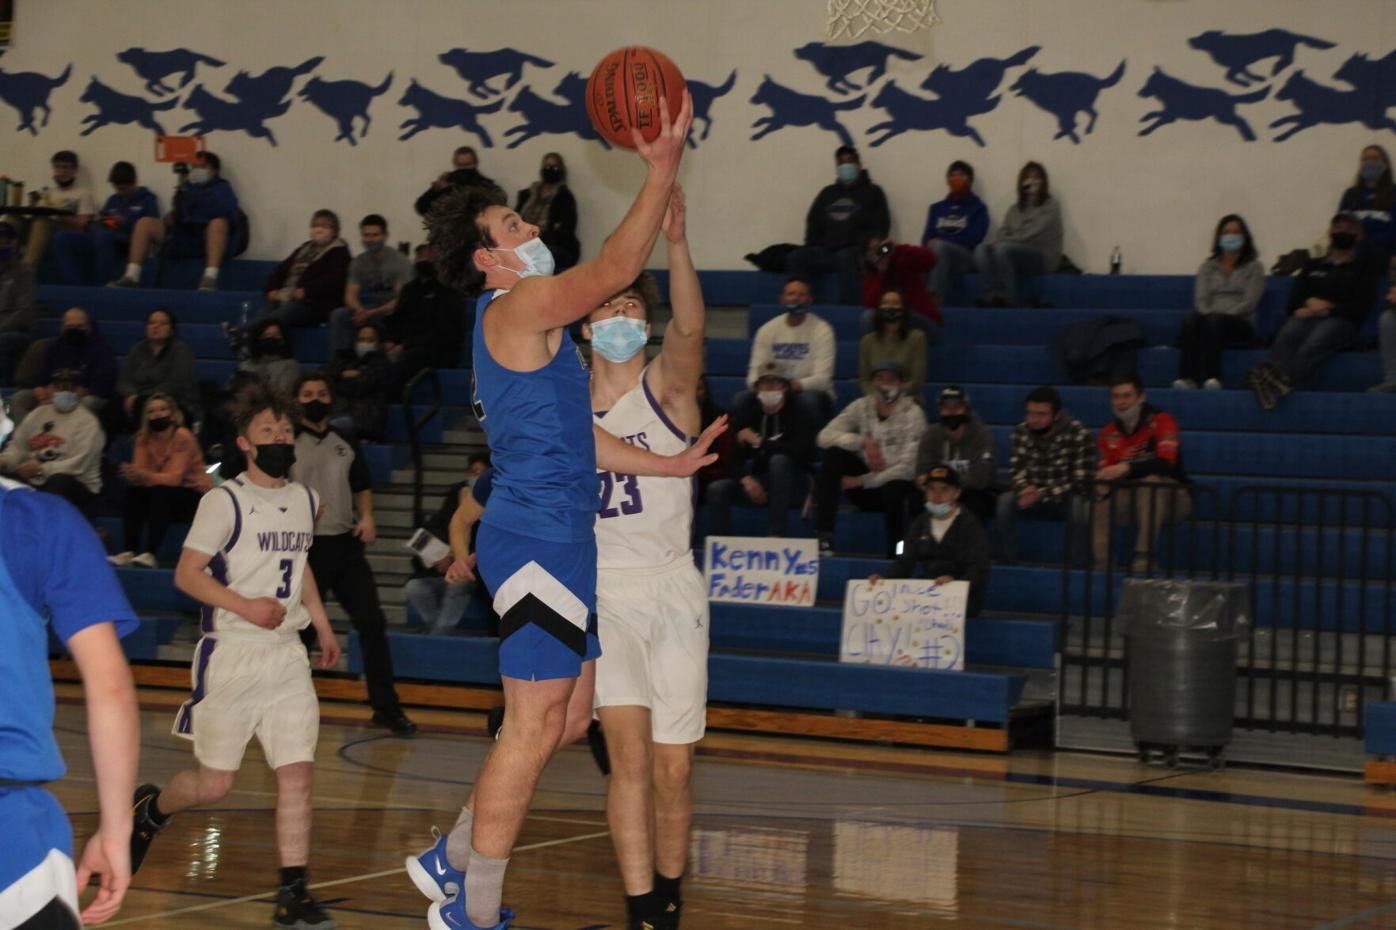 Clay Nelson scores two of his season-high 43 points in the Wolves' 85-24 win over Laporte.